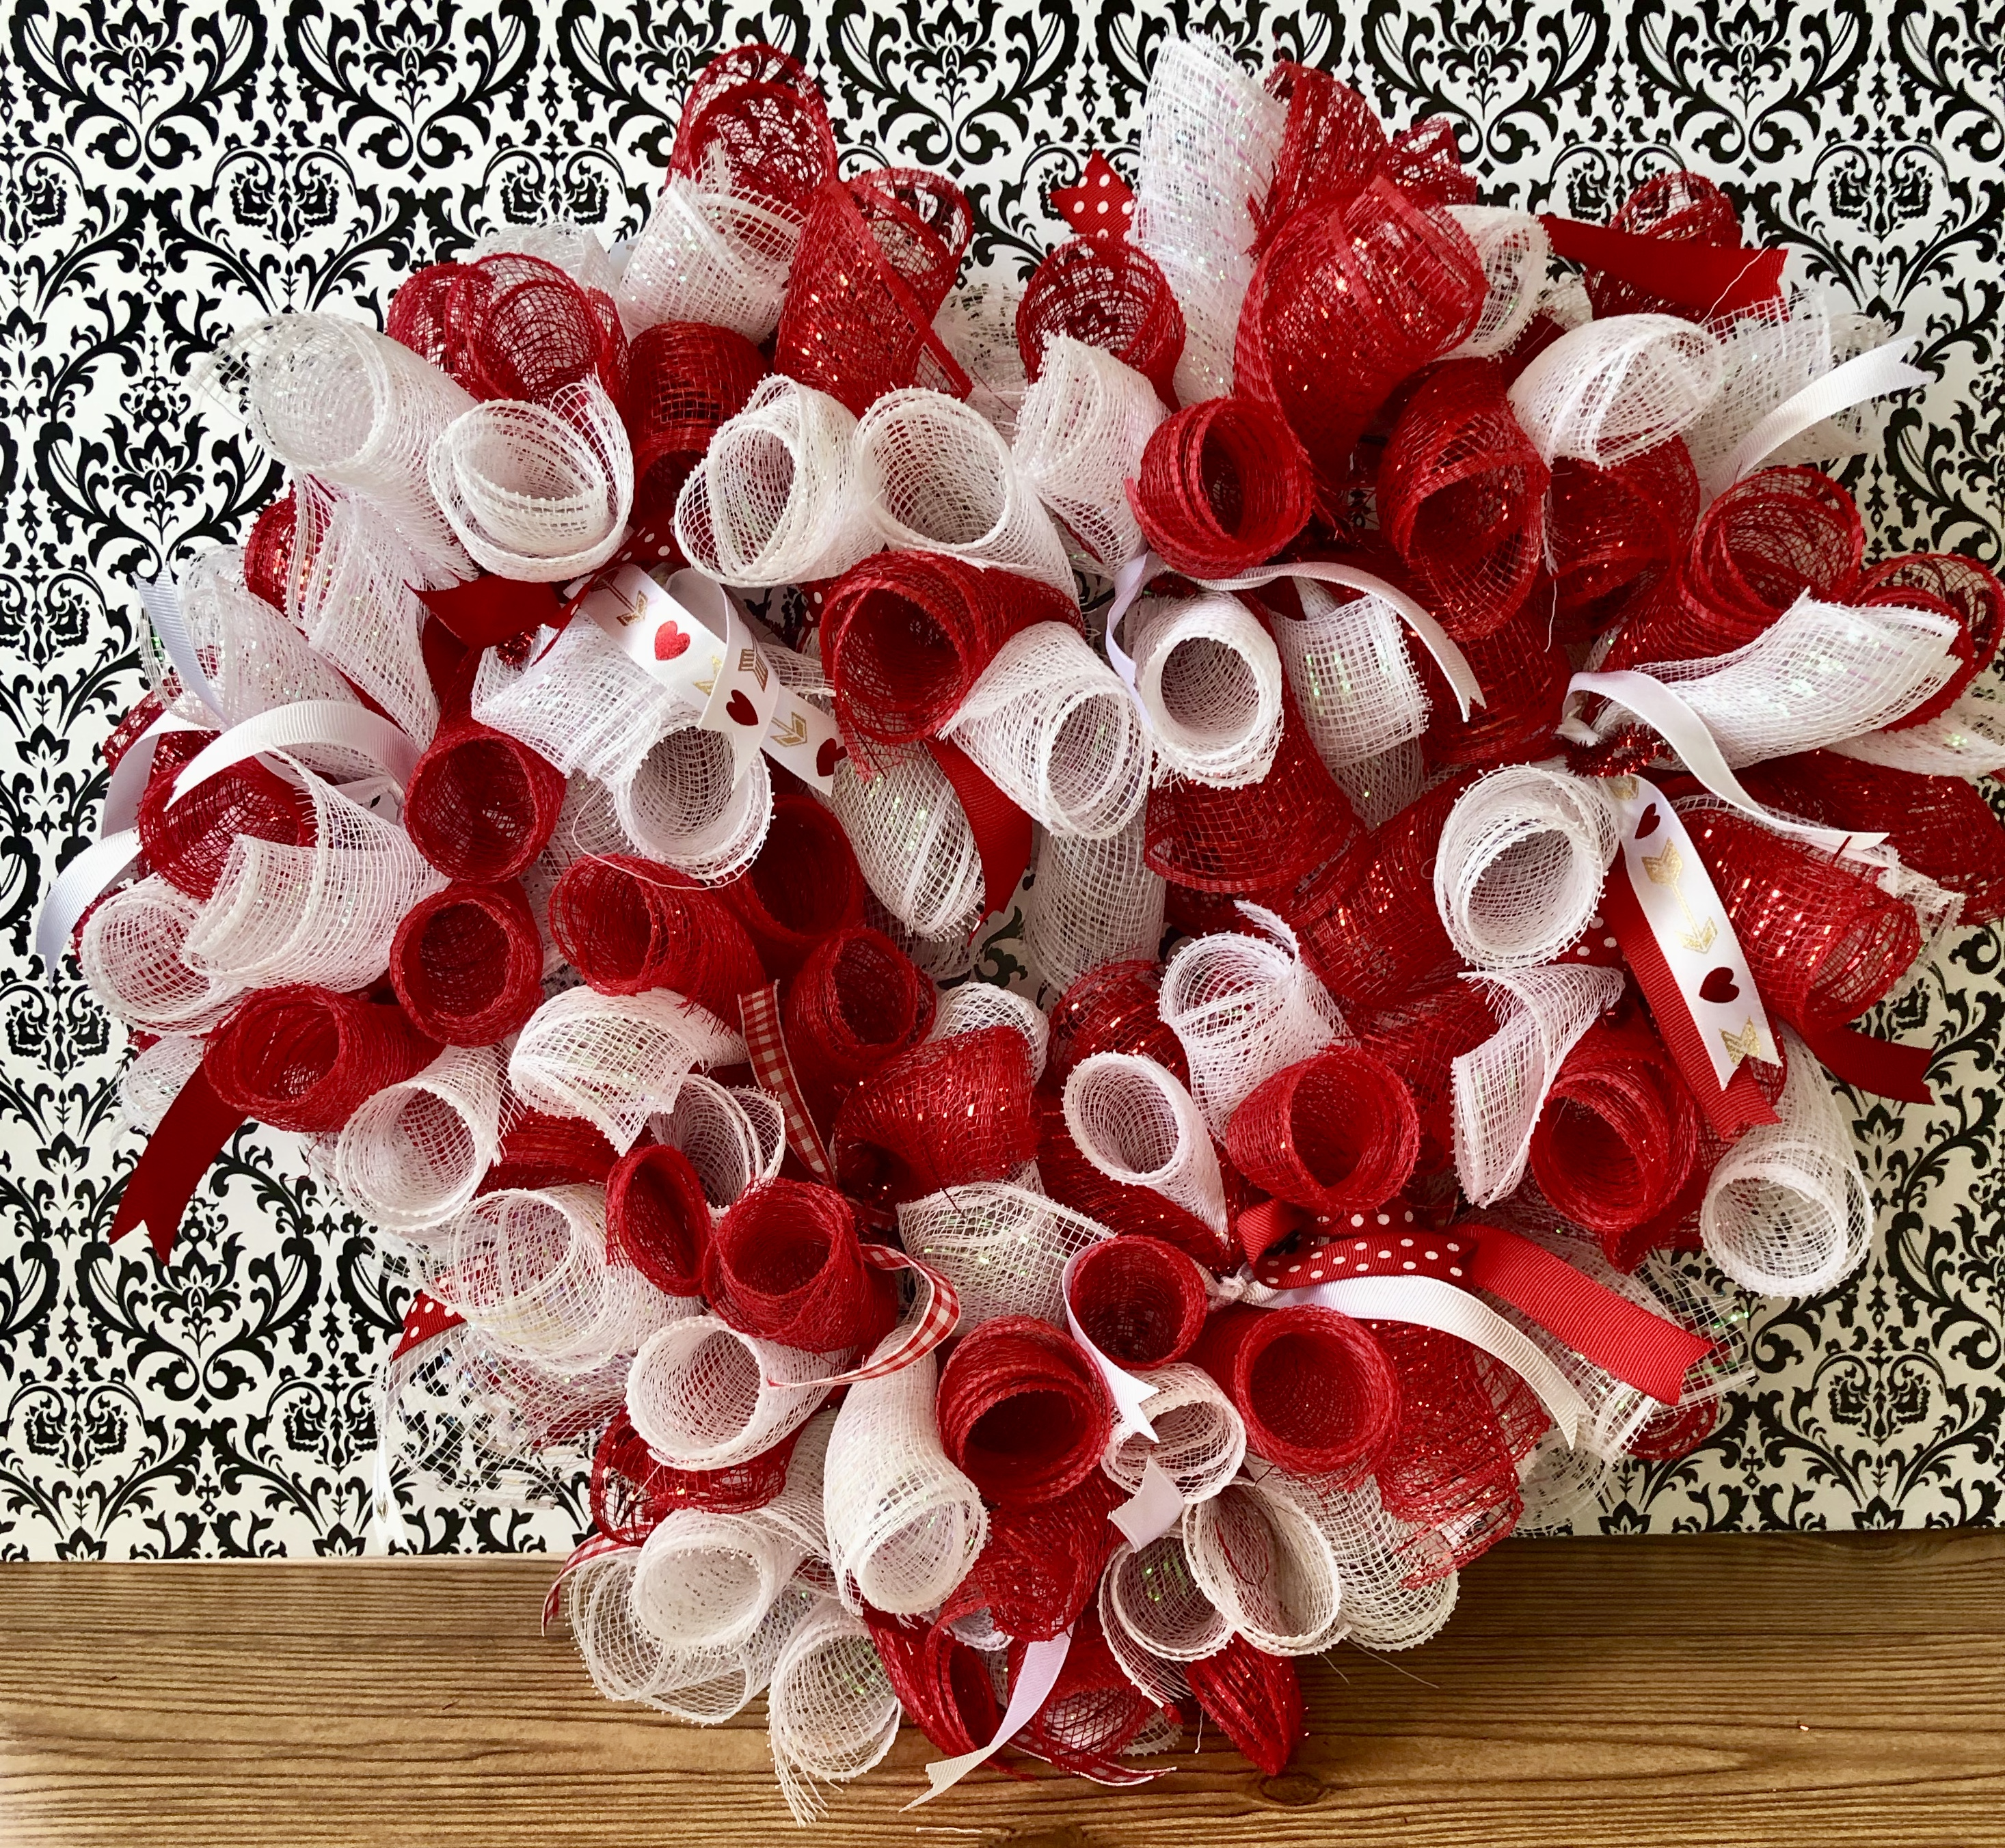 How To Make A Rolled Deco Mesh Wreath